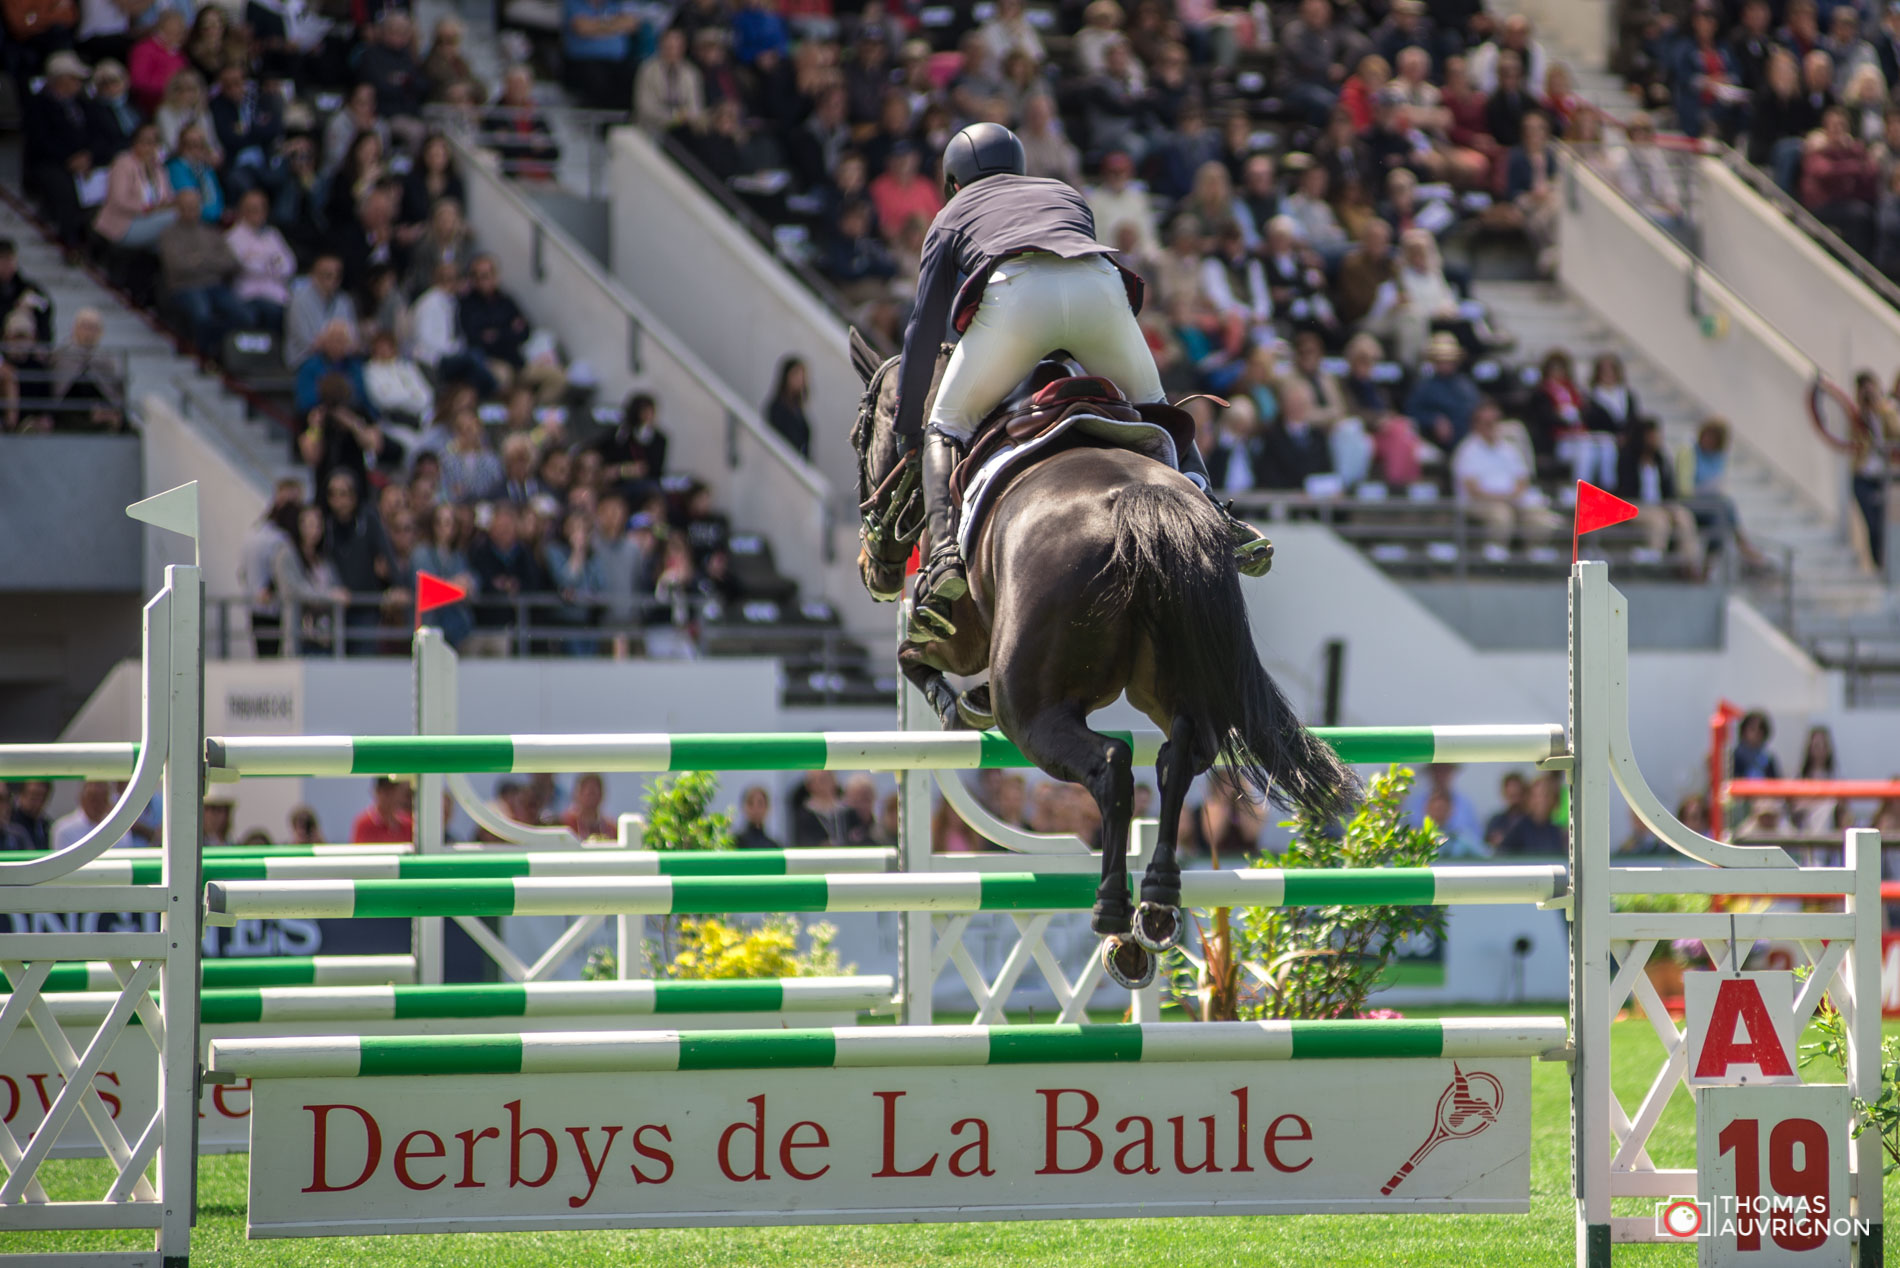 Jumping International La Baule George Emeric Atomic Bomn